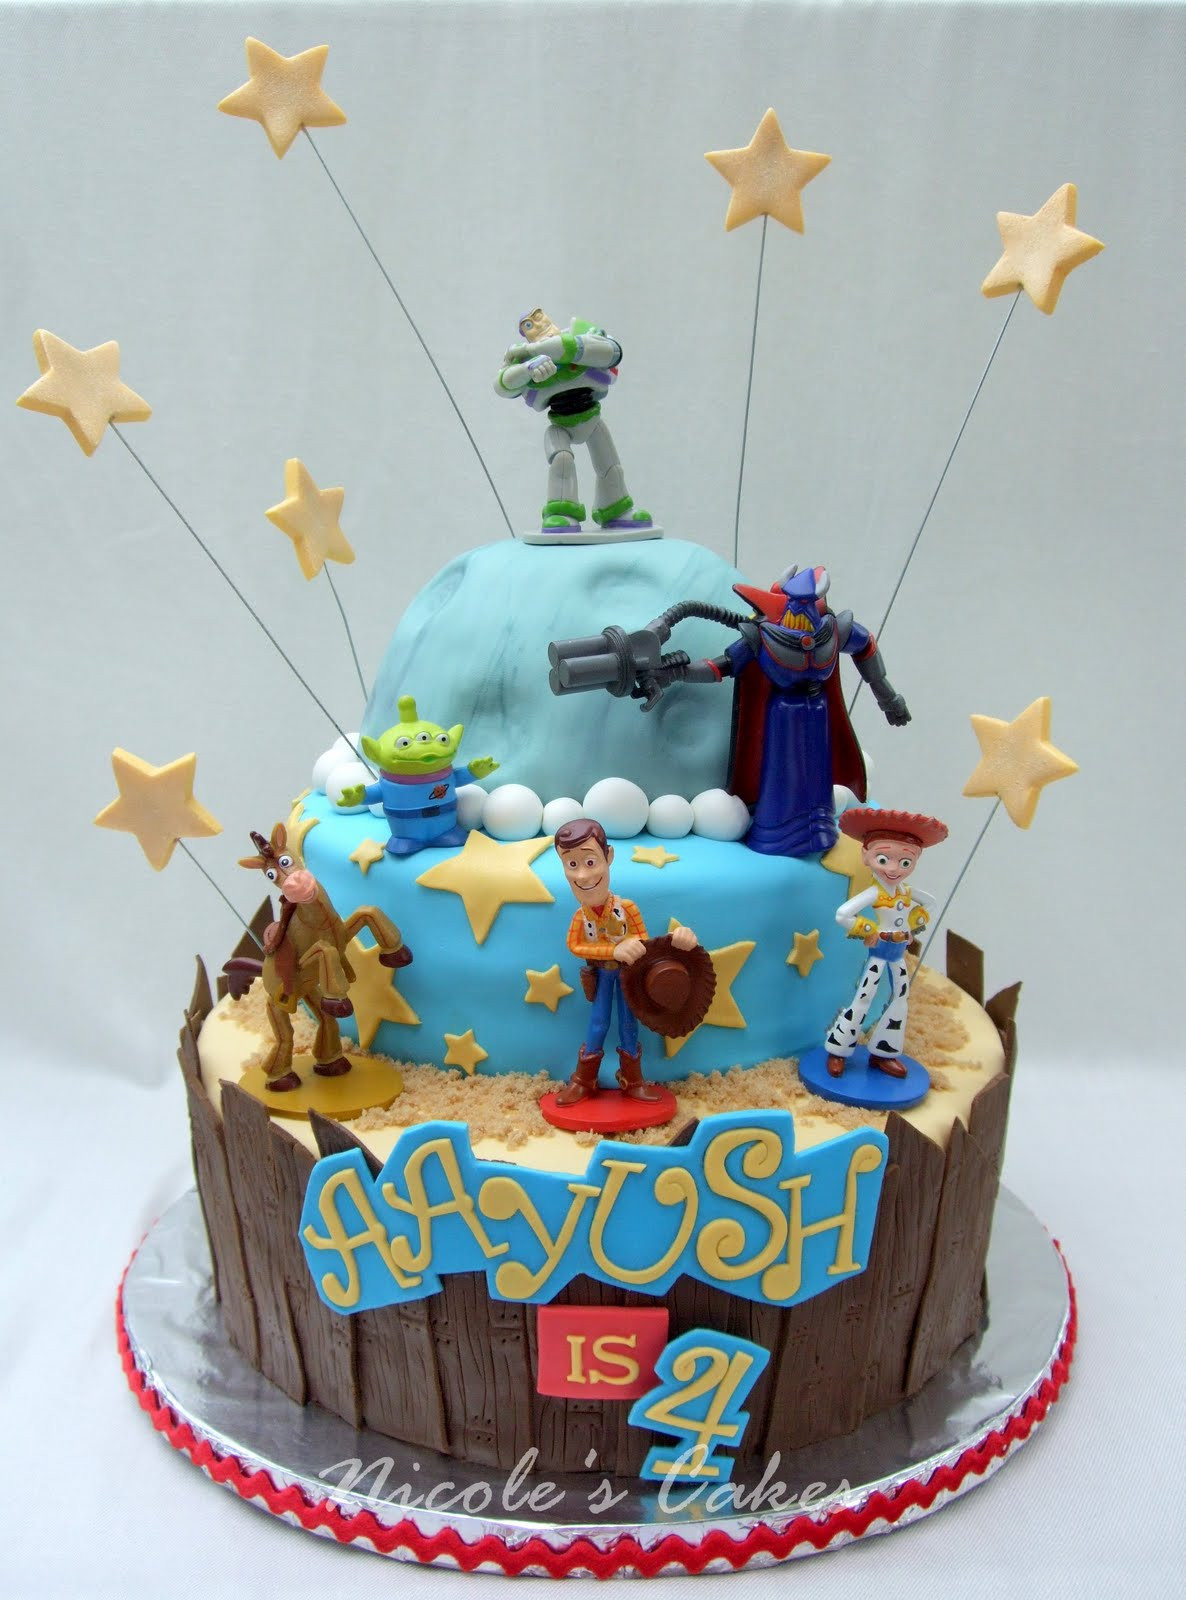 Best ideas about Toy Birthday Cake . Save or Pin Confections Cakes & Creations To Infinity And Now.